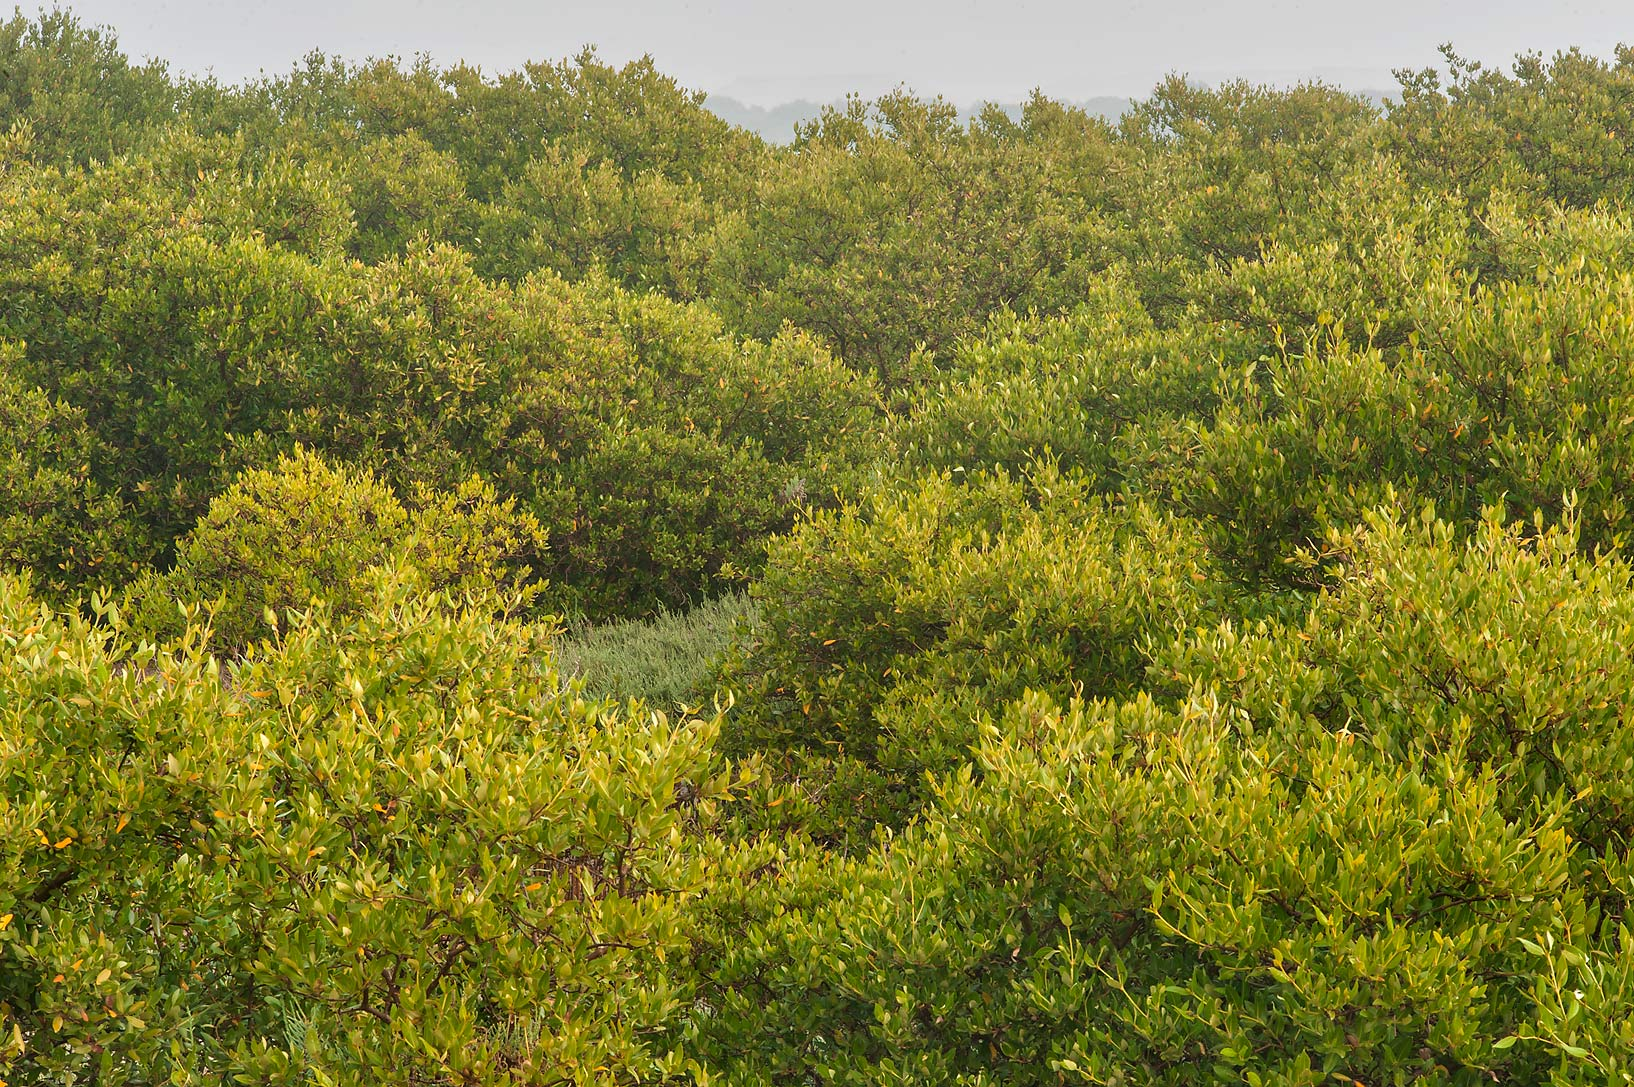 Mangrove forest (Avicennia marina) on north side...Jazirat Bin Ghanim). Al Khor, Qatar